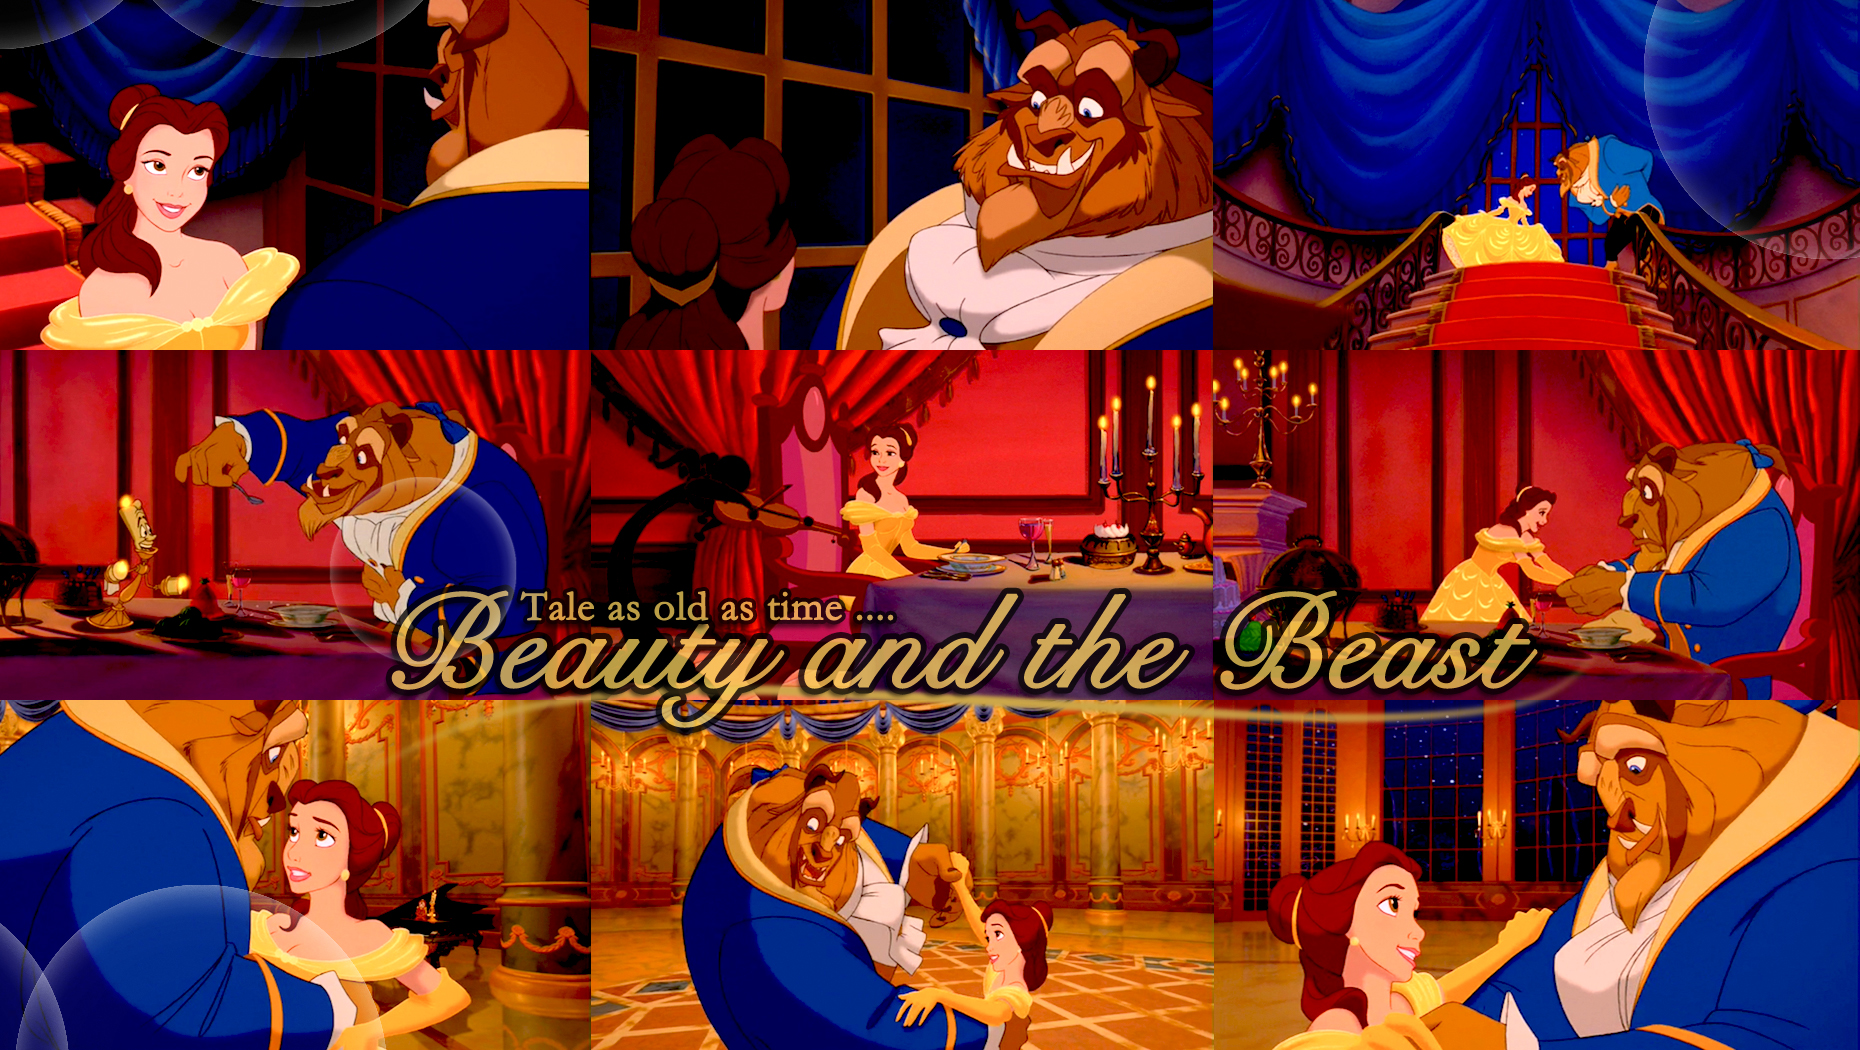 Download Beauty And Beast: Beauty And The Beast Wallpaper And Background Image